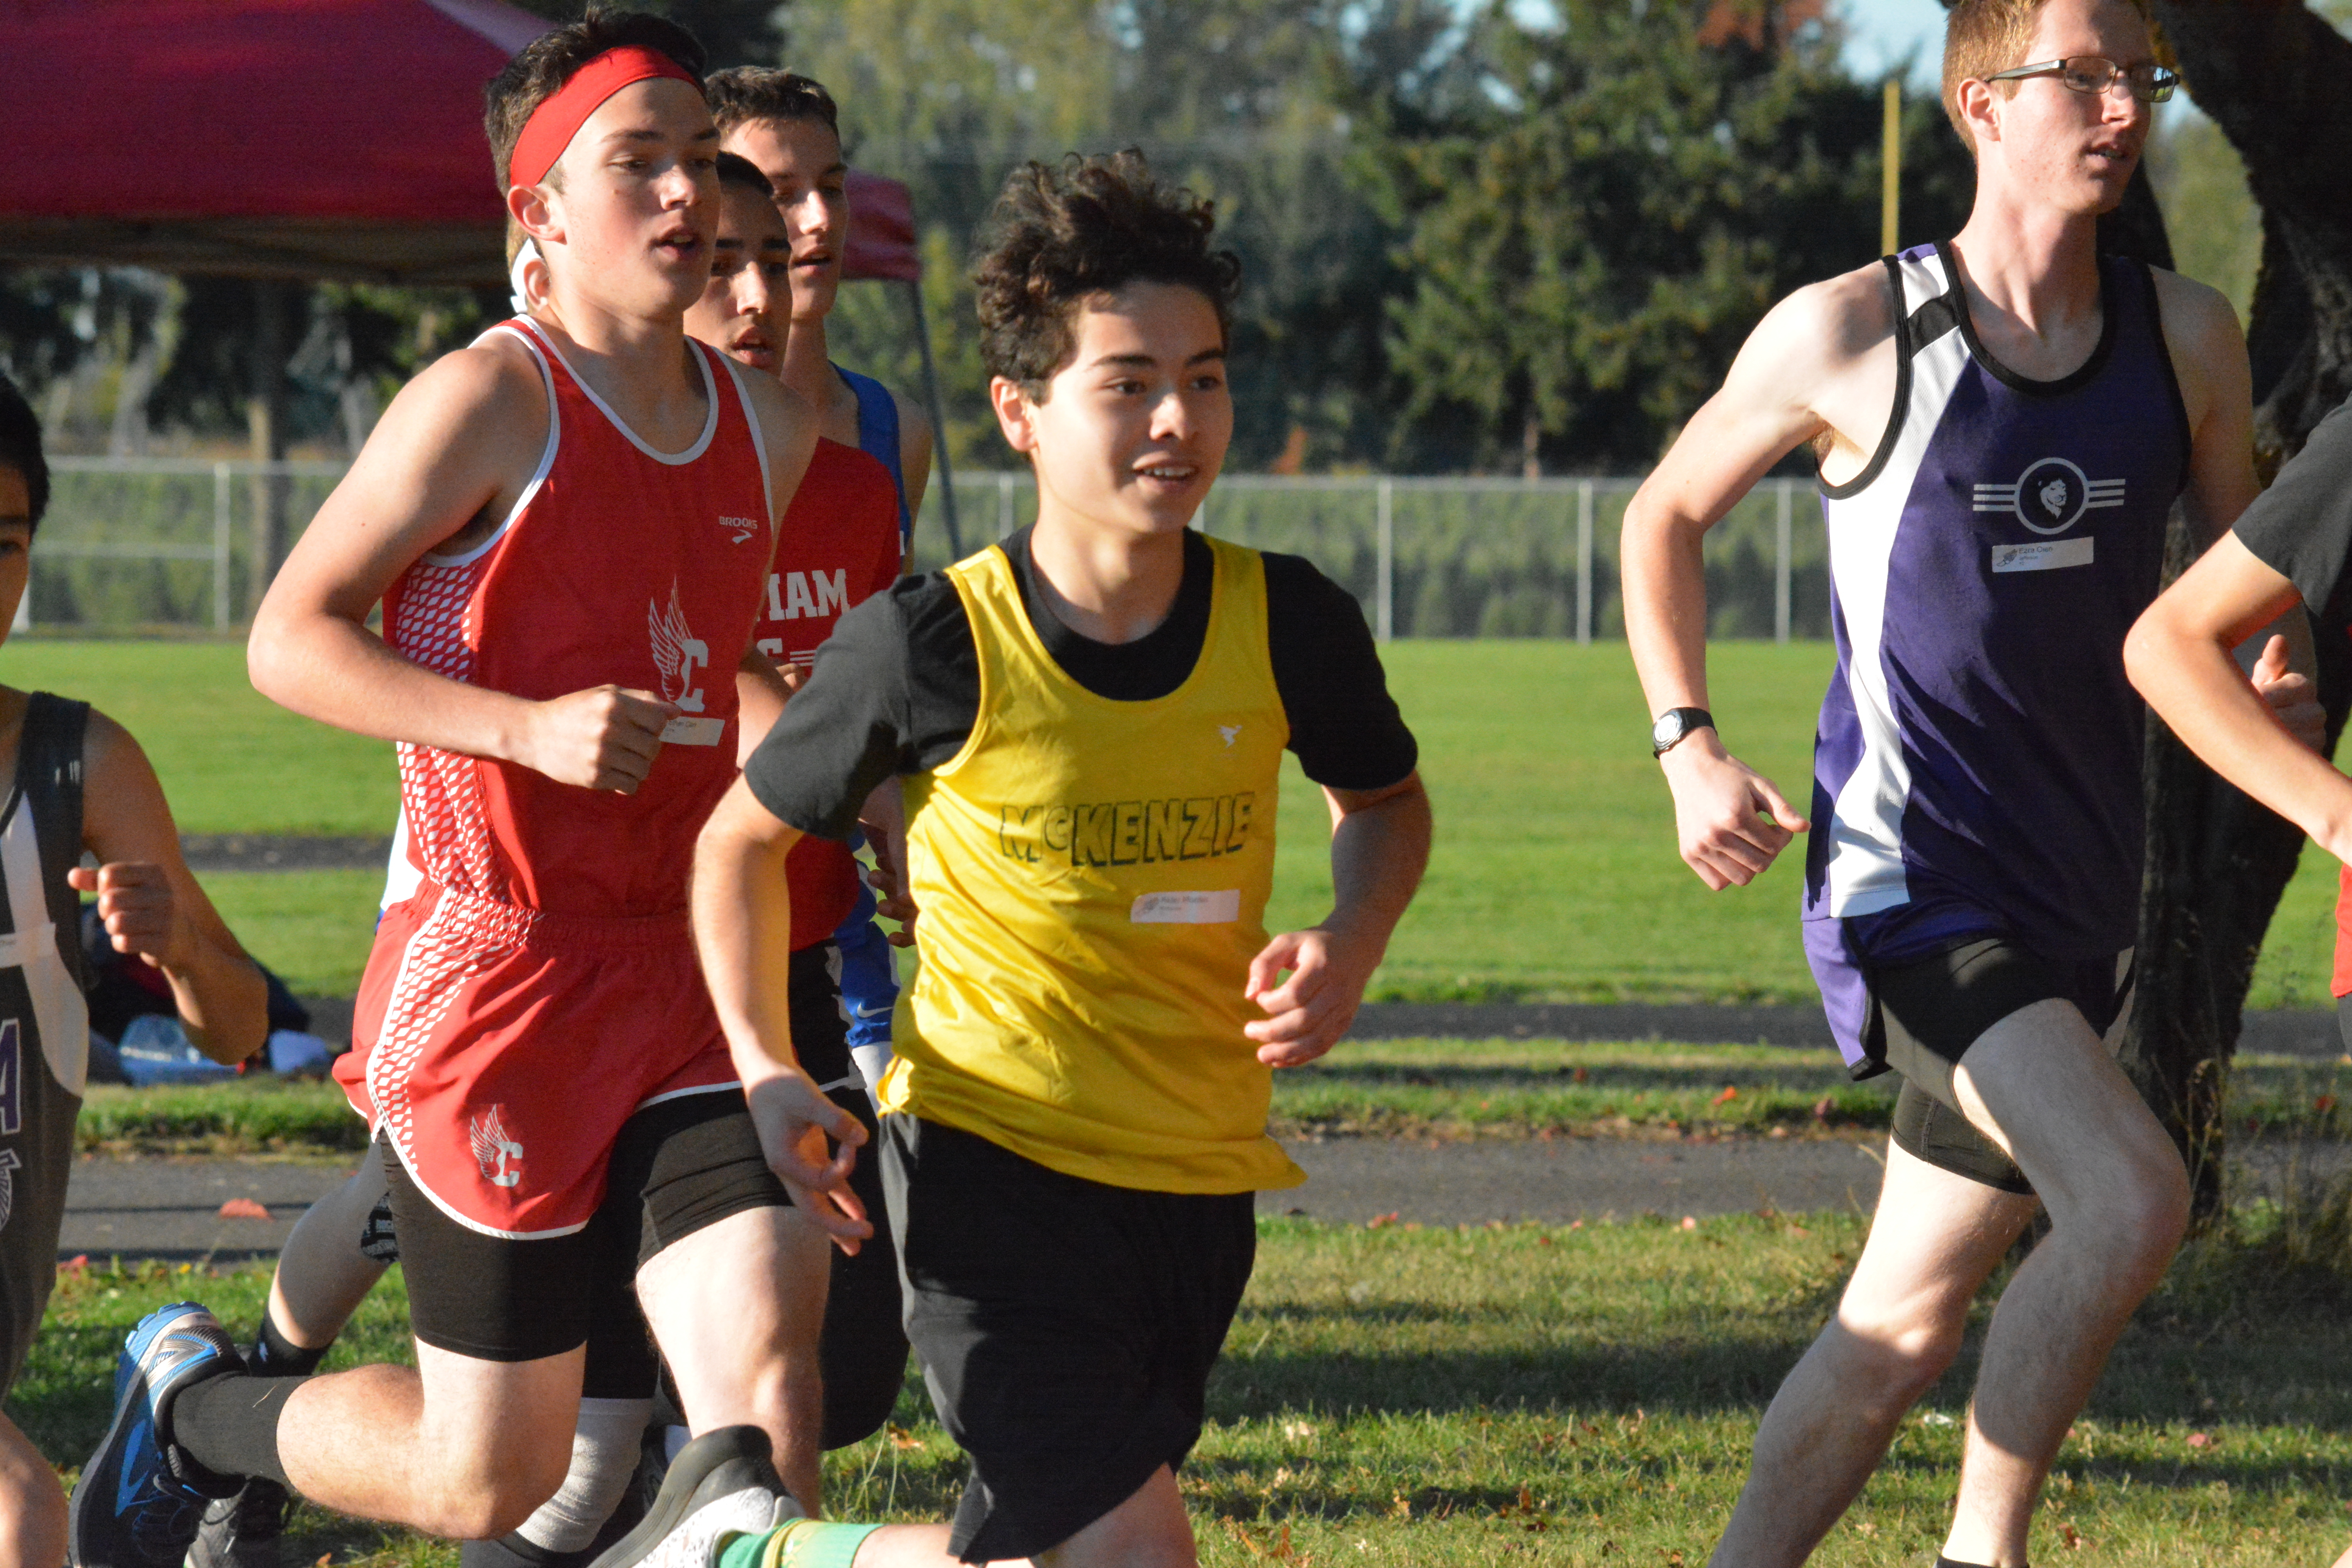 Student running in a cross country race.